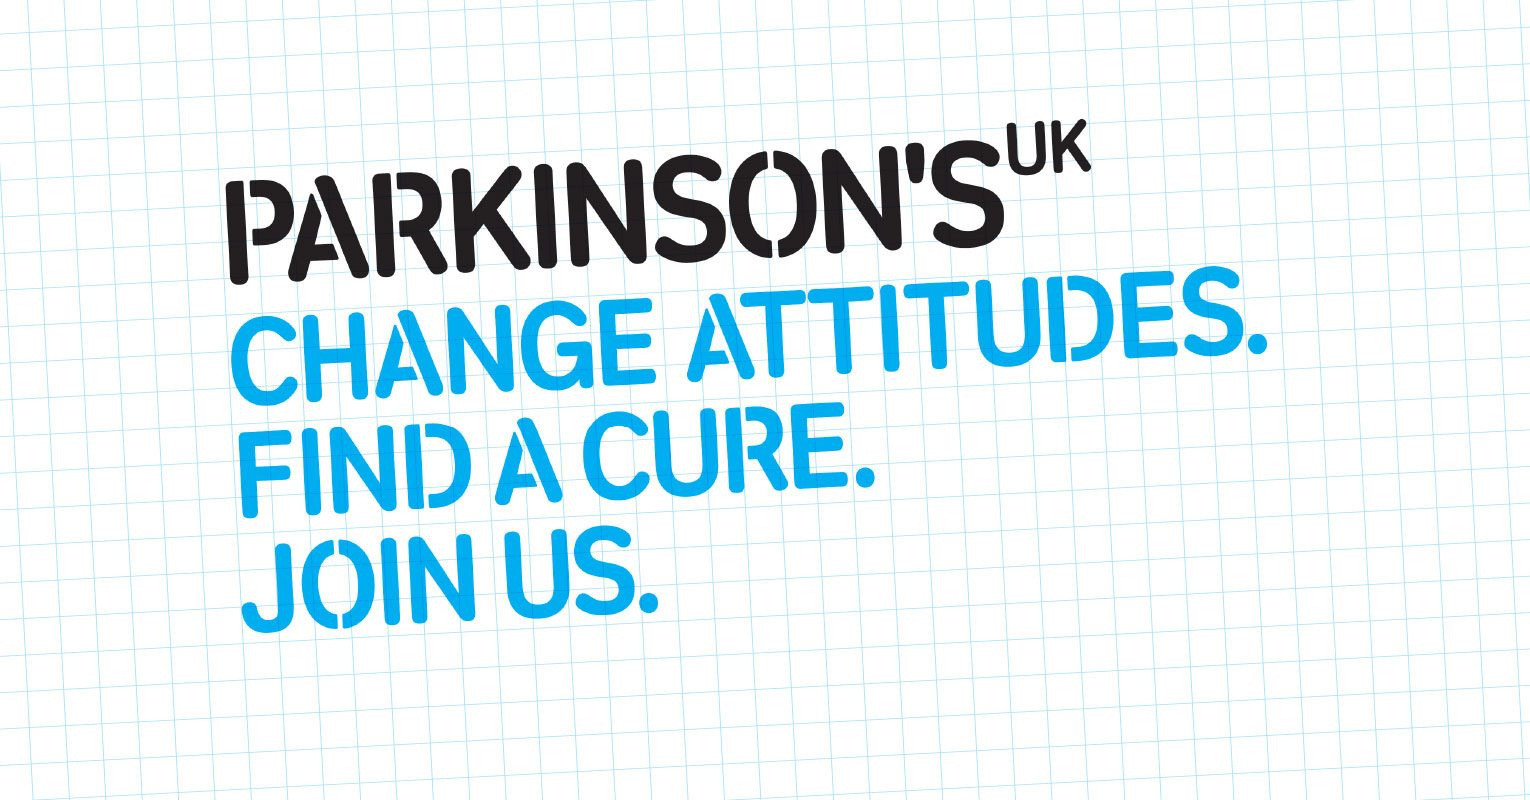 Parkinson's UK call to action - Change attitudes. Find a cure. Join us.